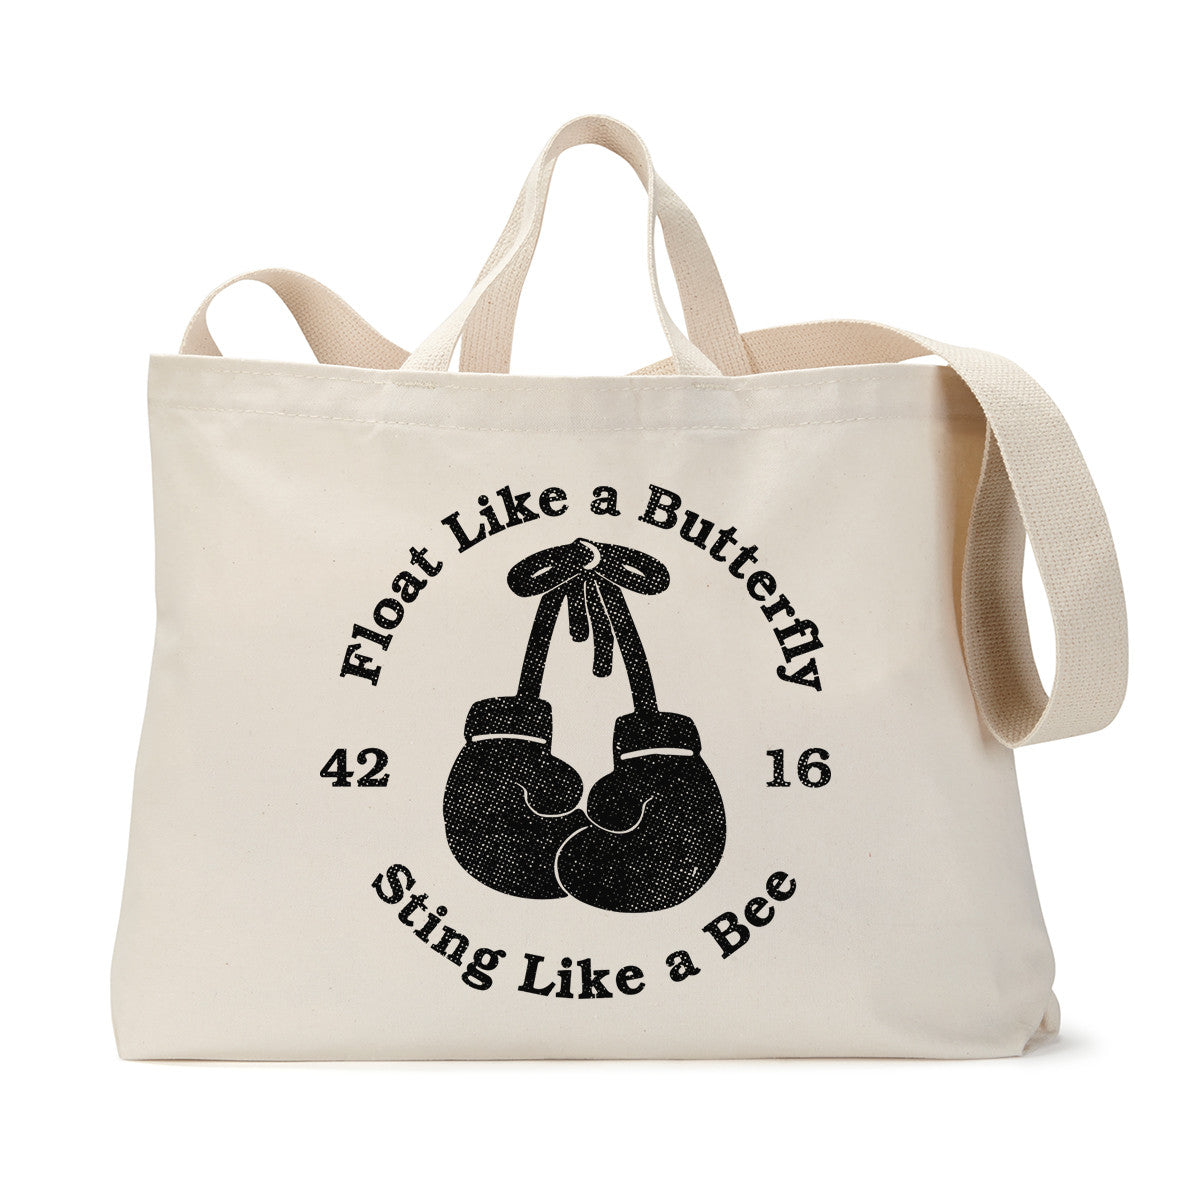 Float Sting 4216 Tote Bag